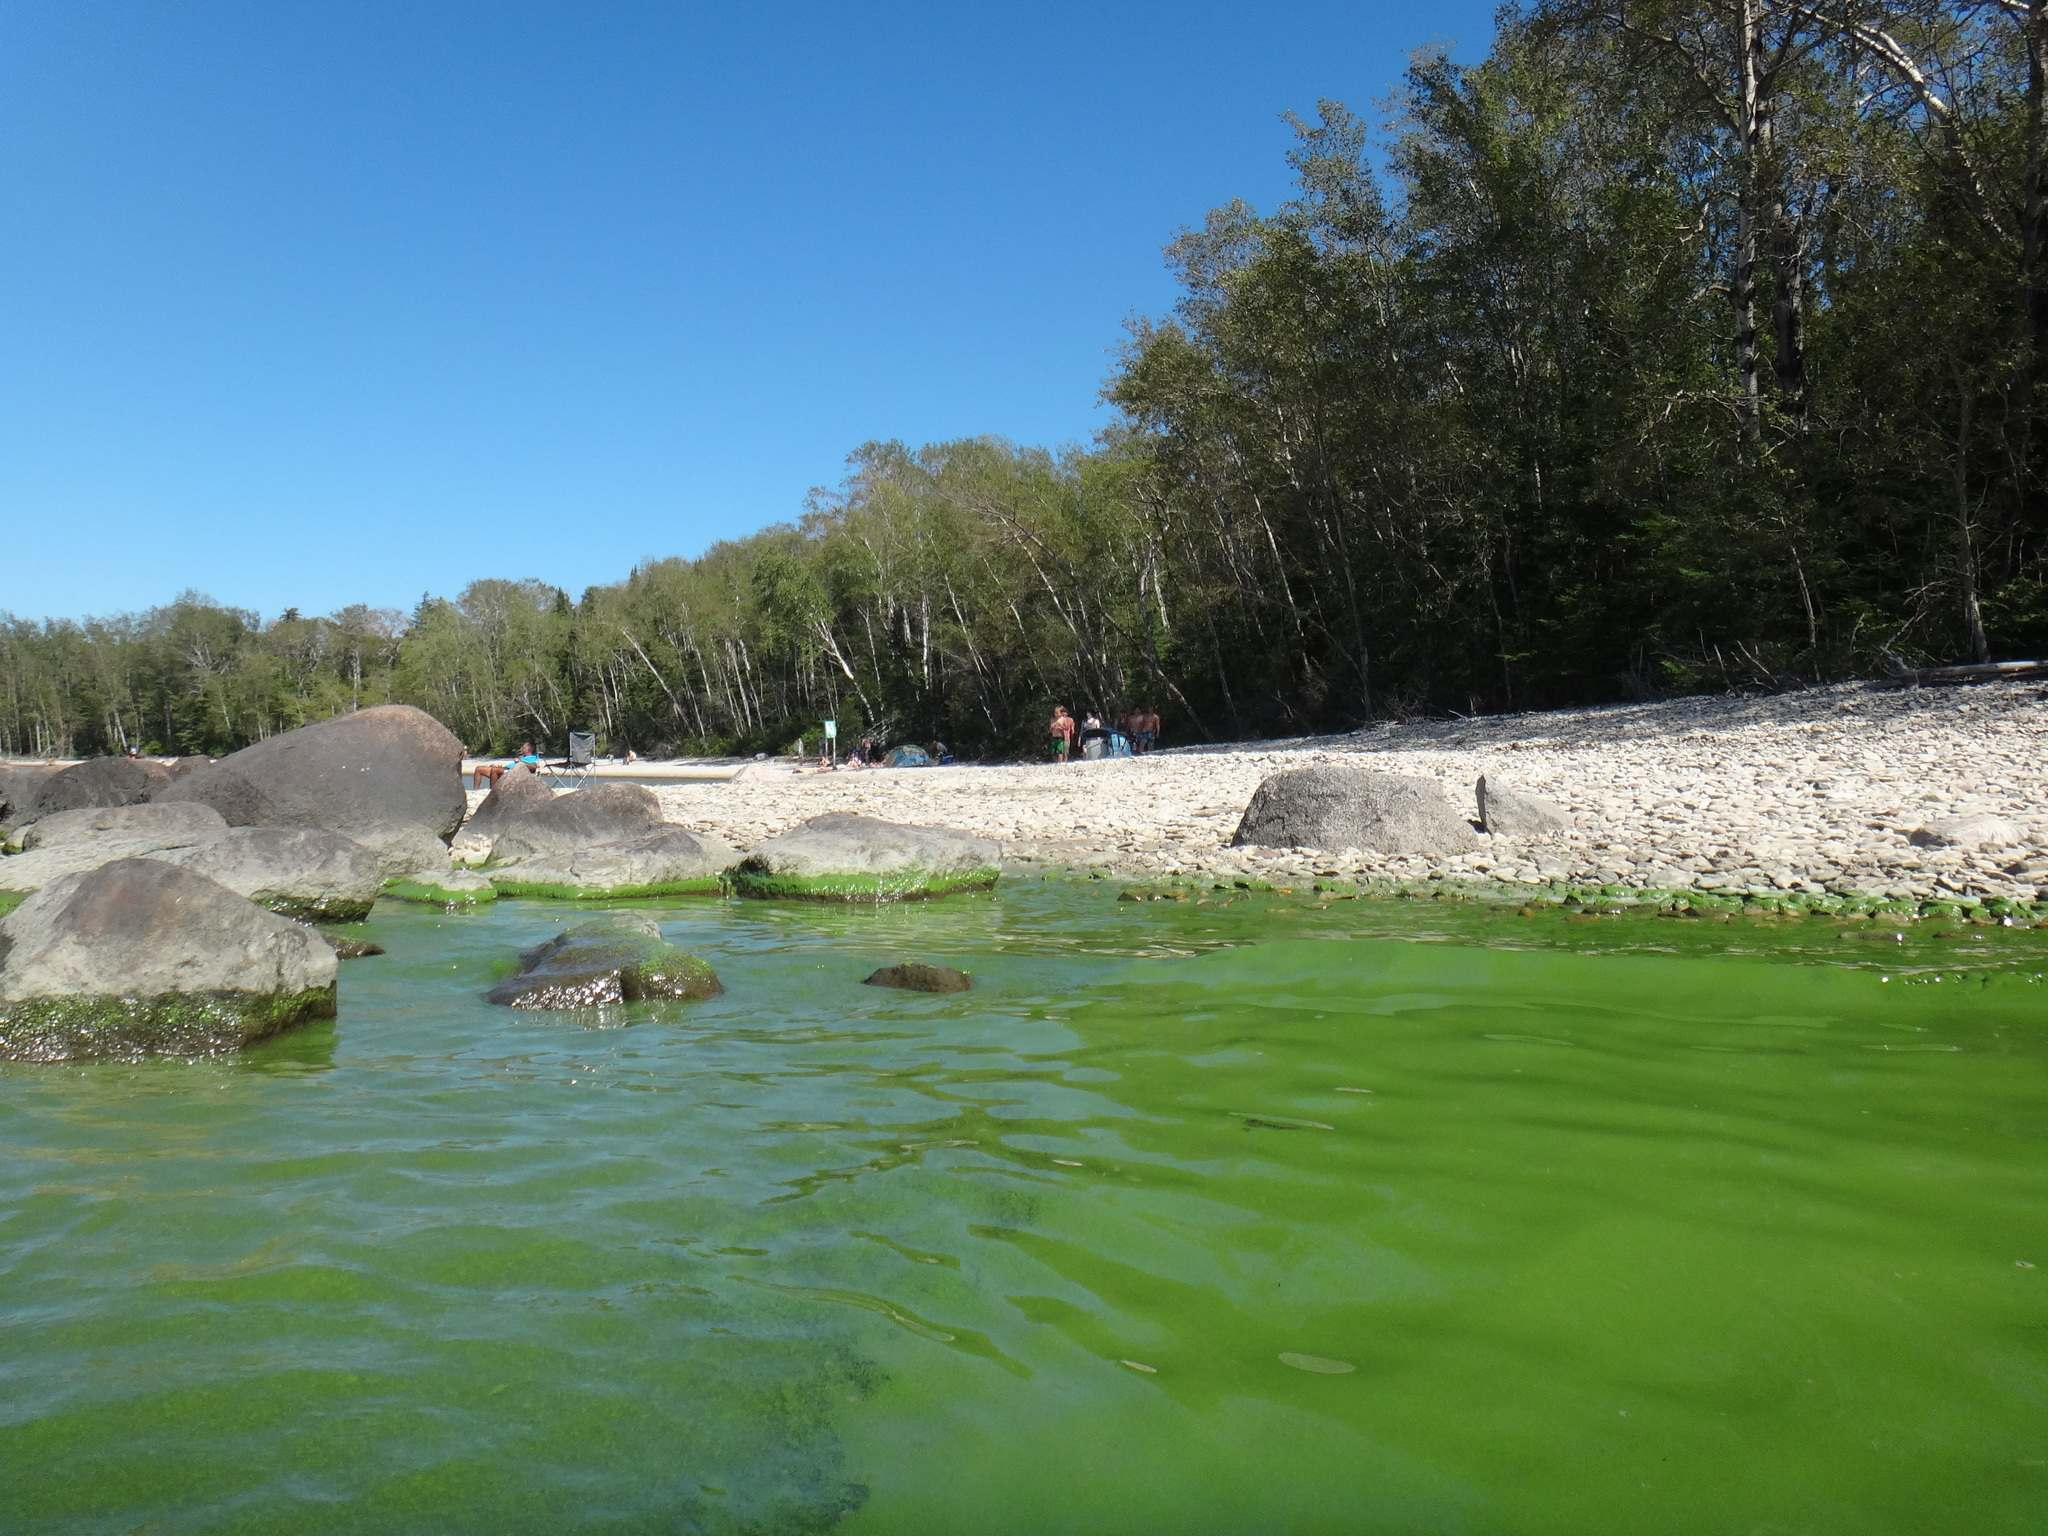 LAURIE BAILEY / WINNIPEG FREE PRESS FILES</p><p>Excess nutrients in our waterways can result in algae blooms such as this one on Lake Winnipeg, as seen at Hecla Island in August this year.</p>